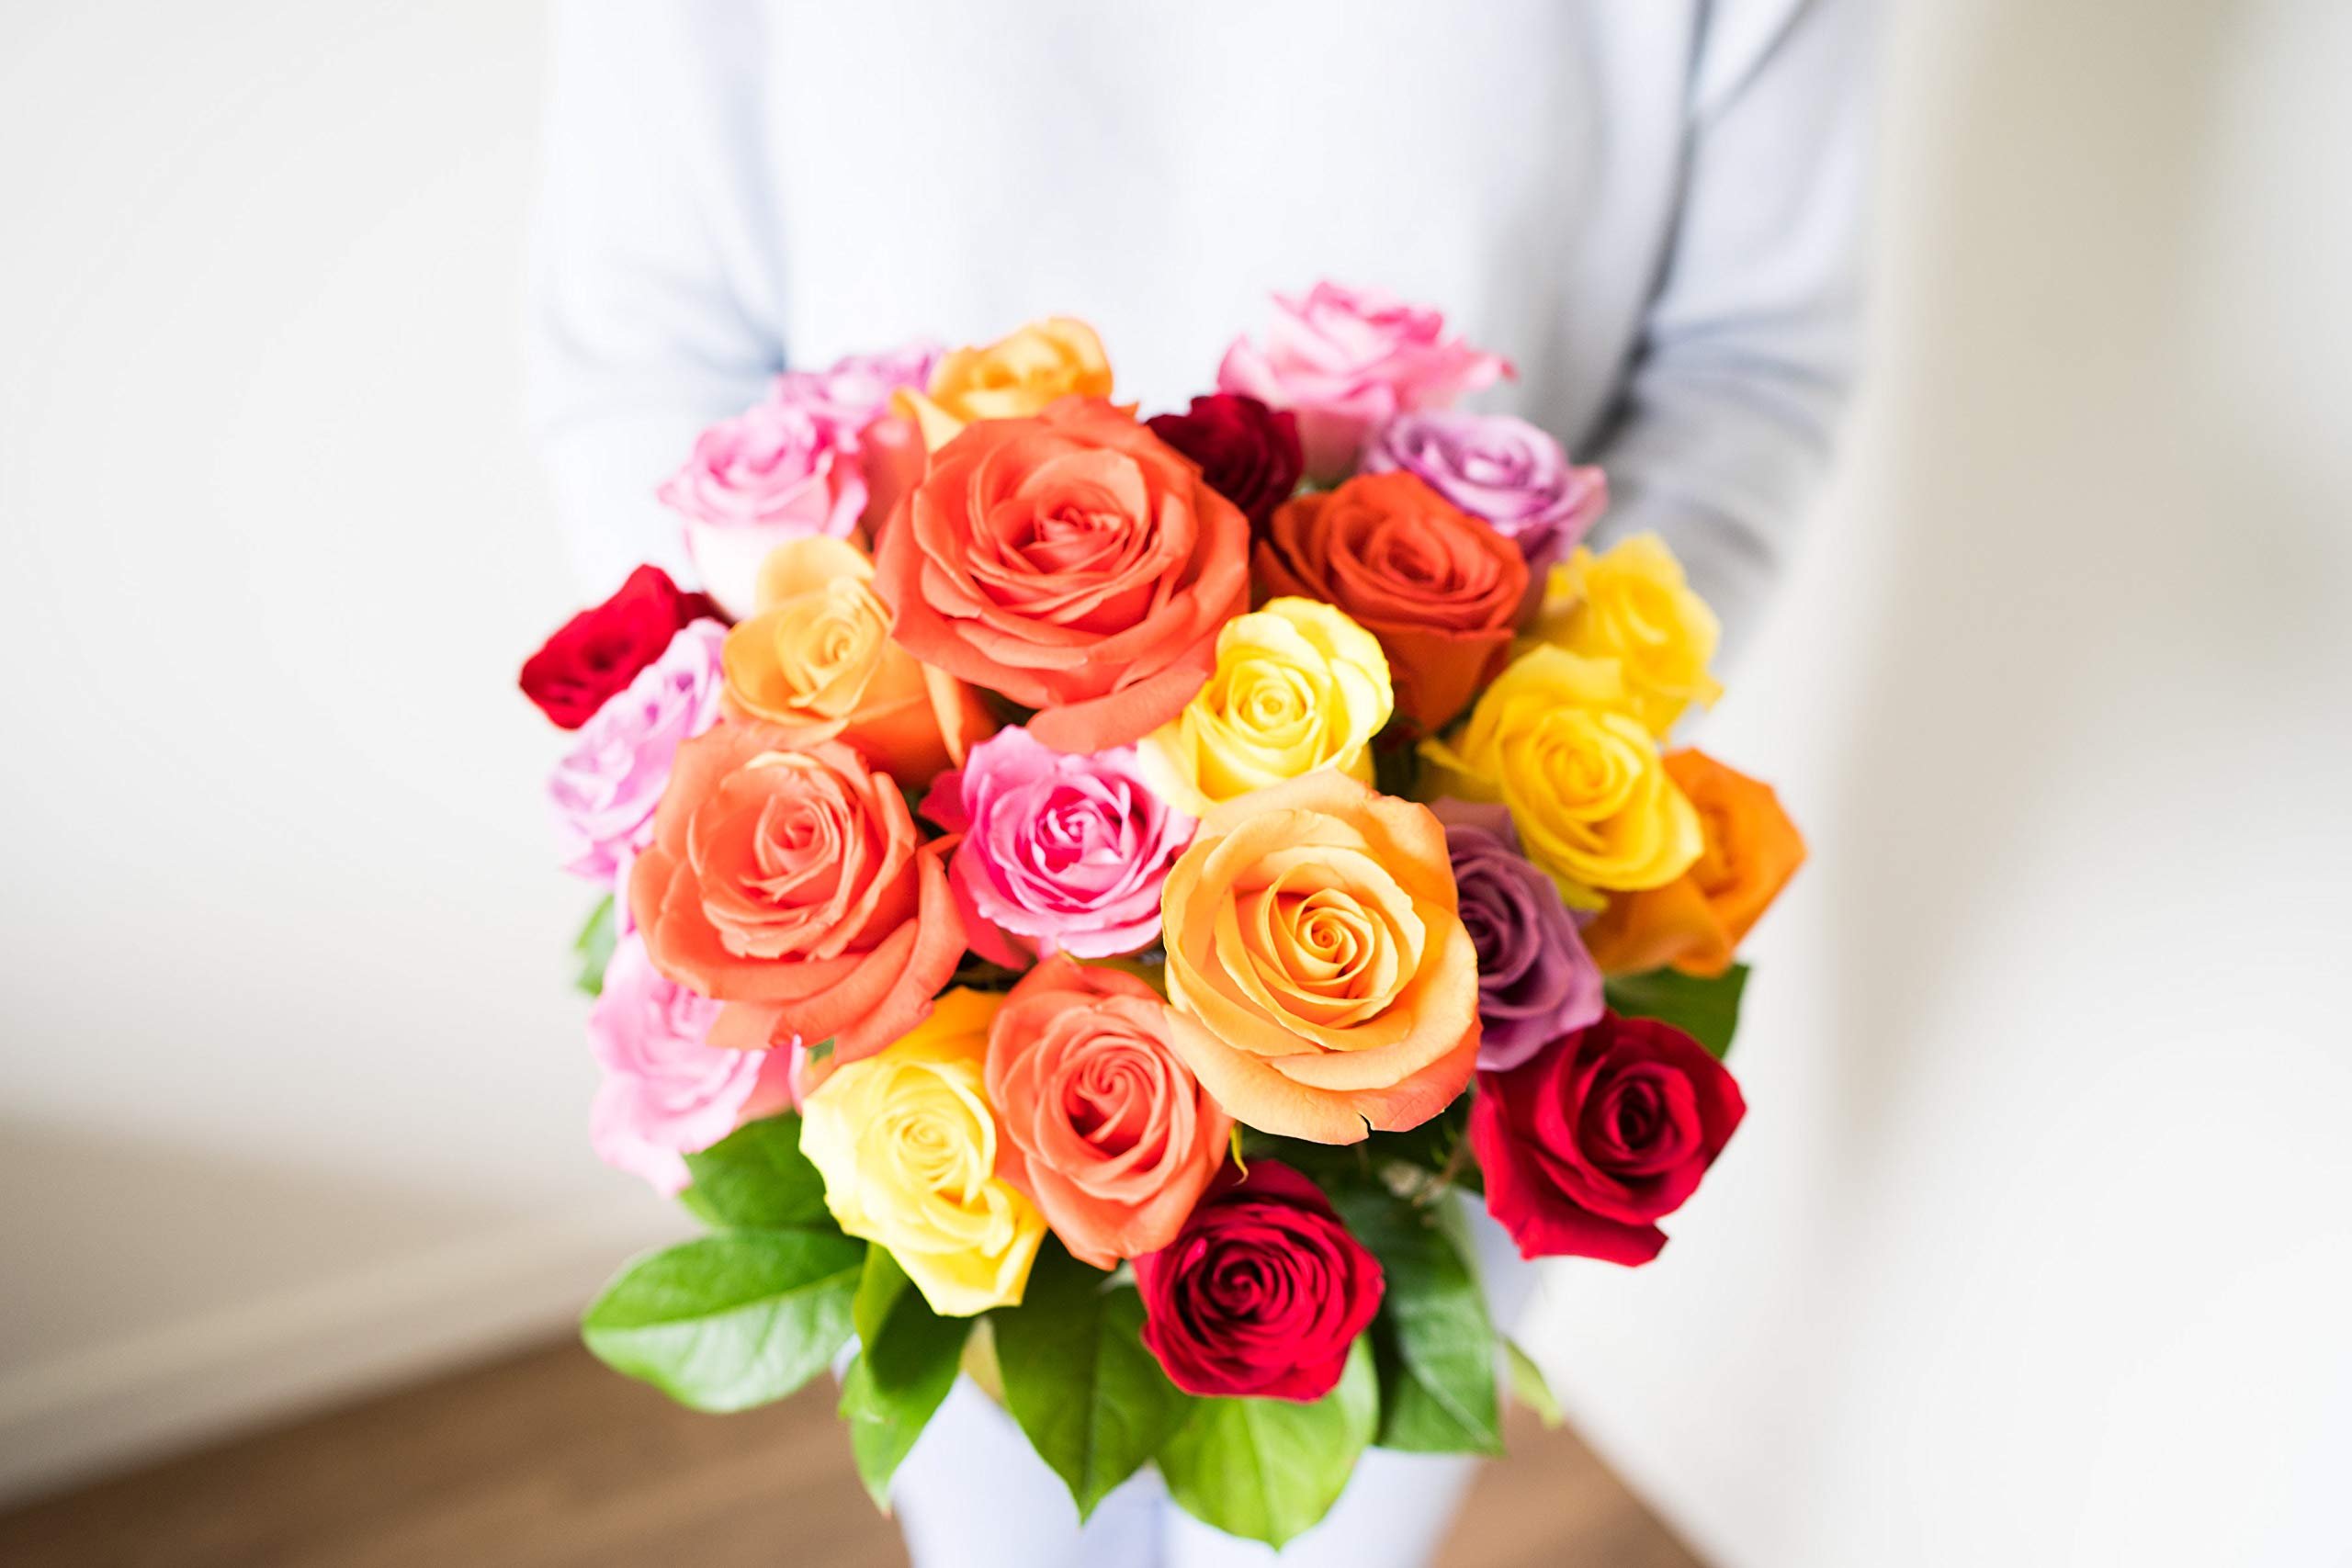 Flowers - Two Dozen Rainbow Roses with Godiva & Bear (Free Vase Included) by From You Flowers (Image #4)